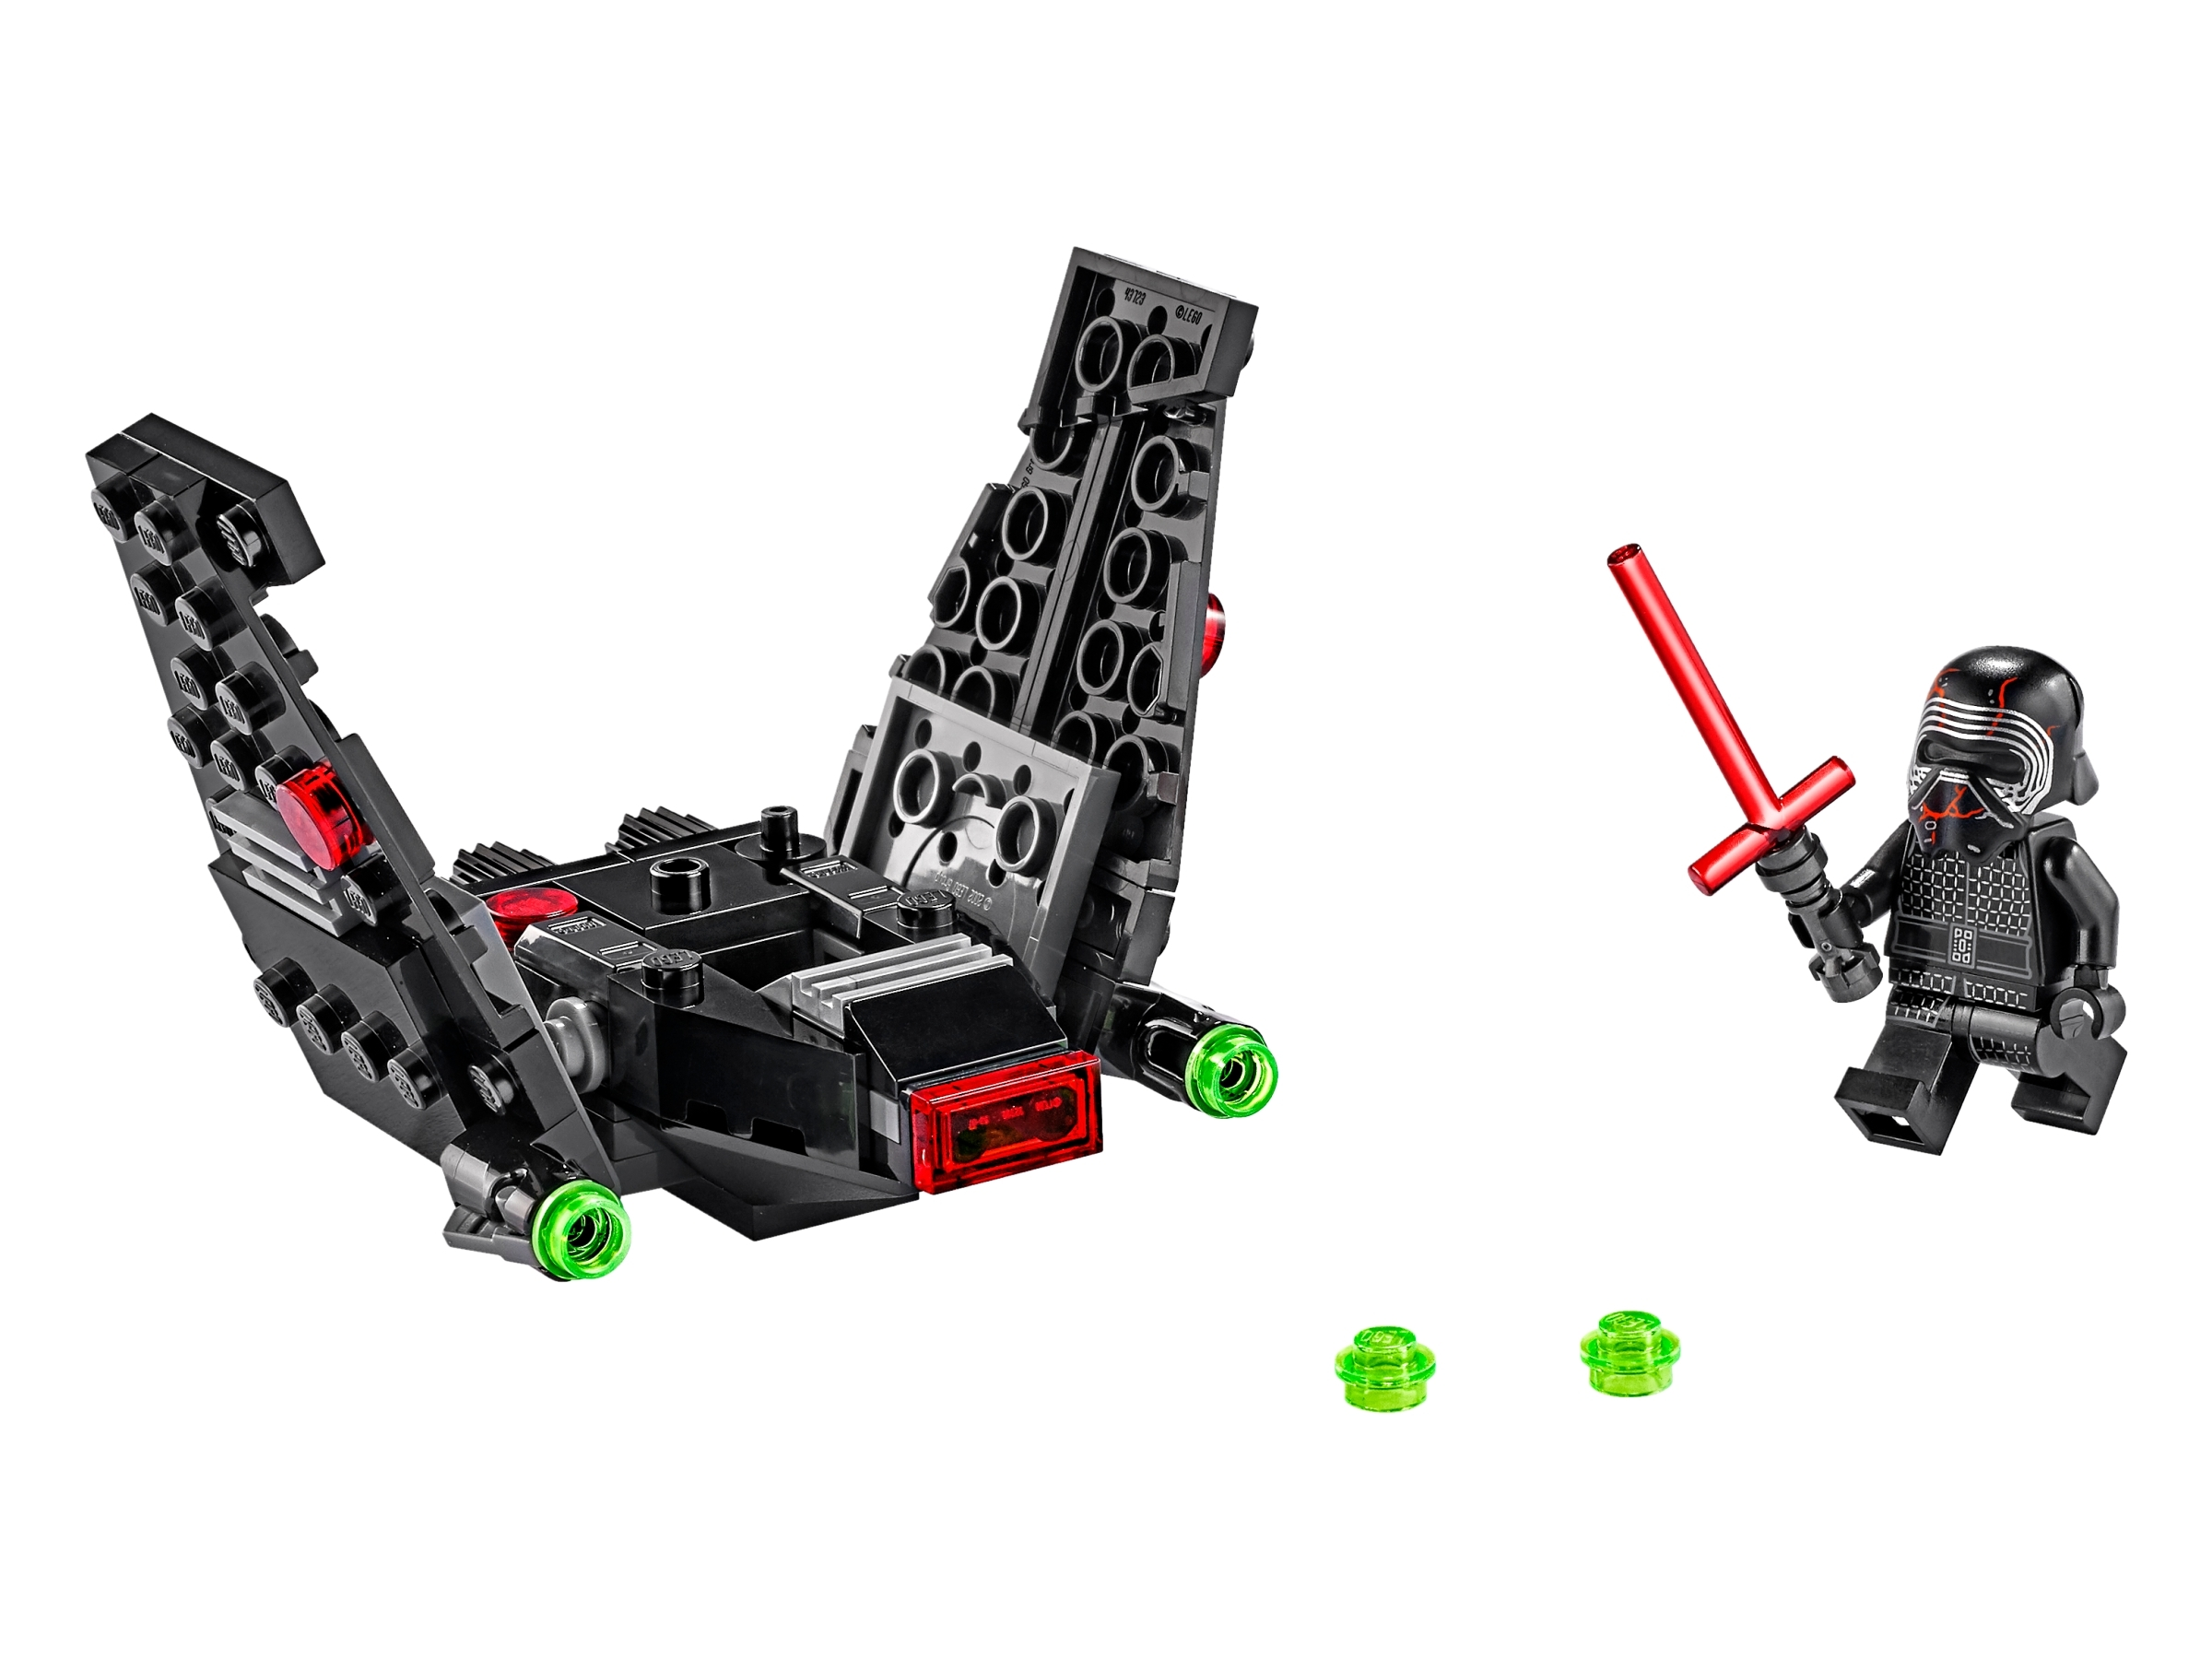 Kylo Ren S Shuttle Microfighter 75264 Star Wars Buy Online At The Official Lego Shop Us